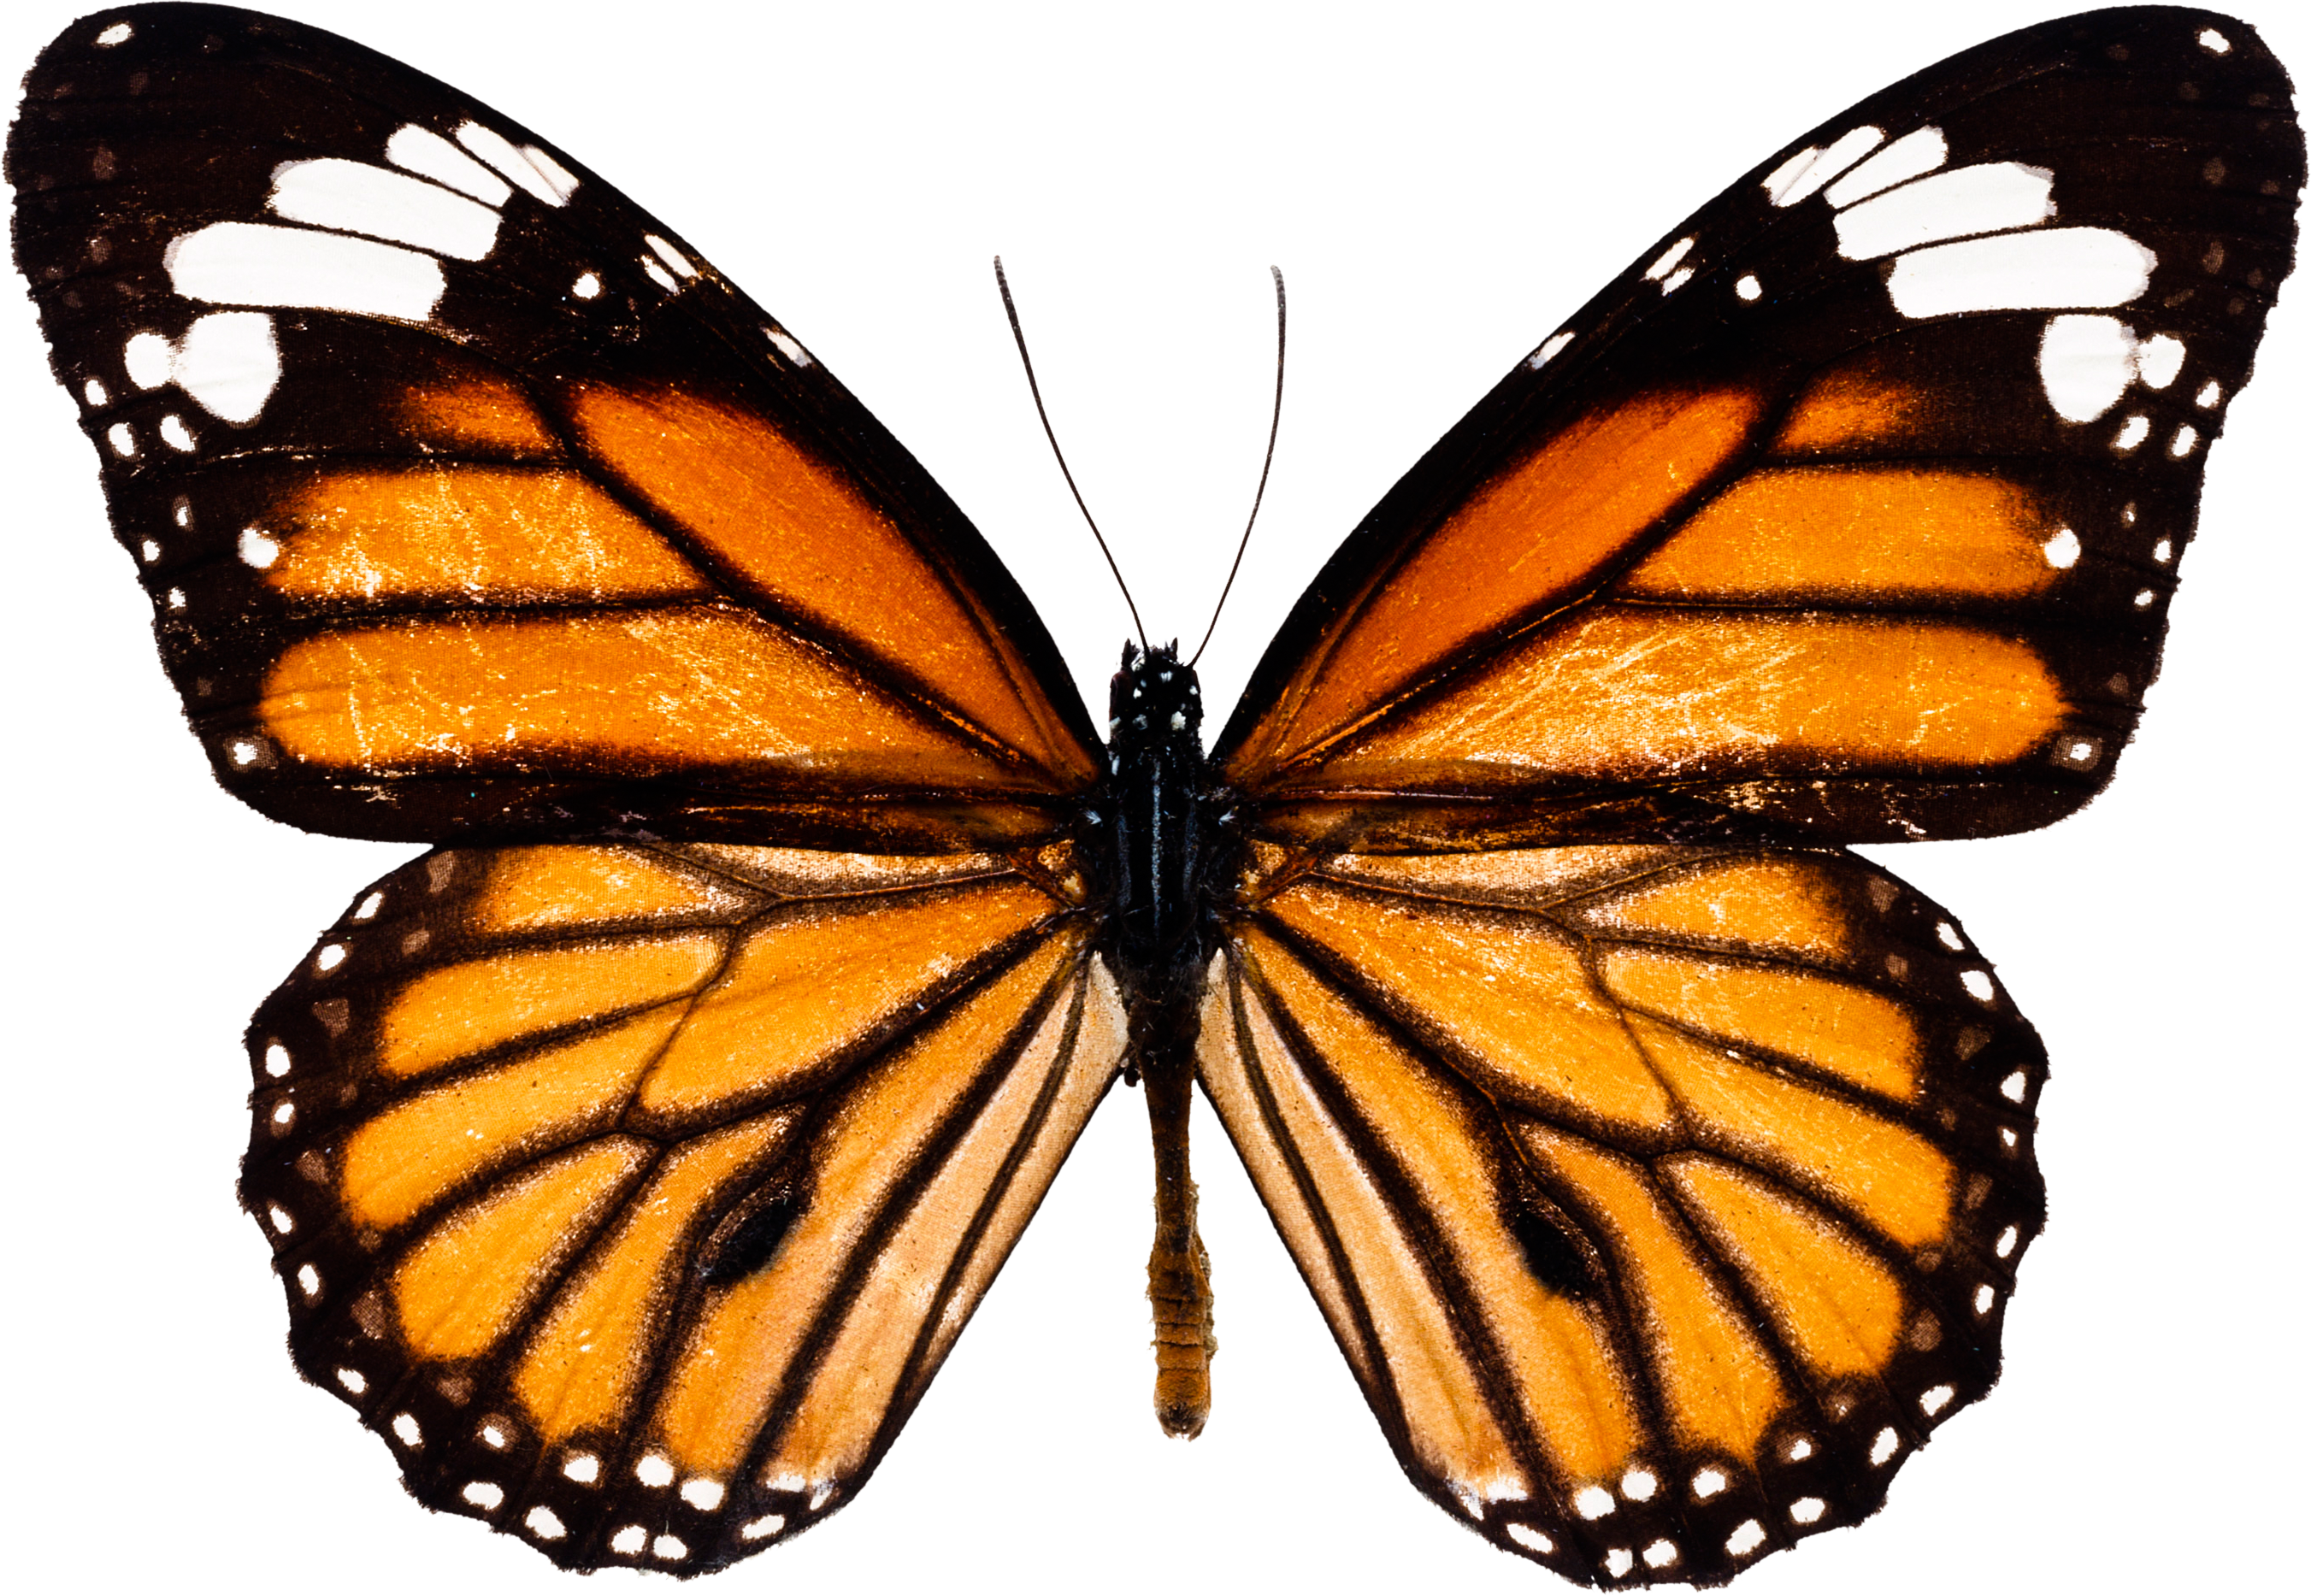 Butterfly wing png. Image free picture download